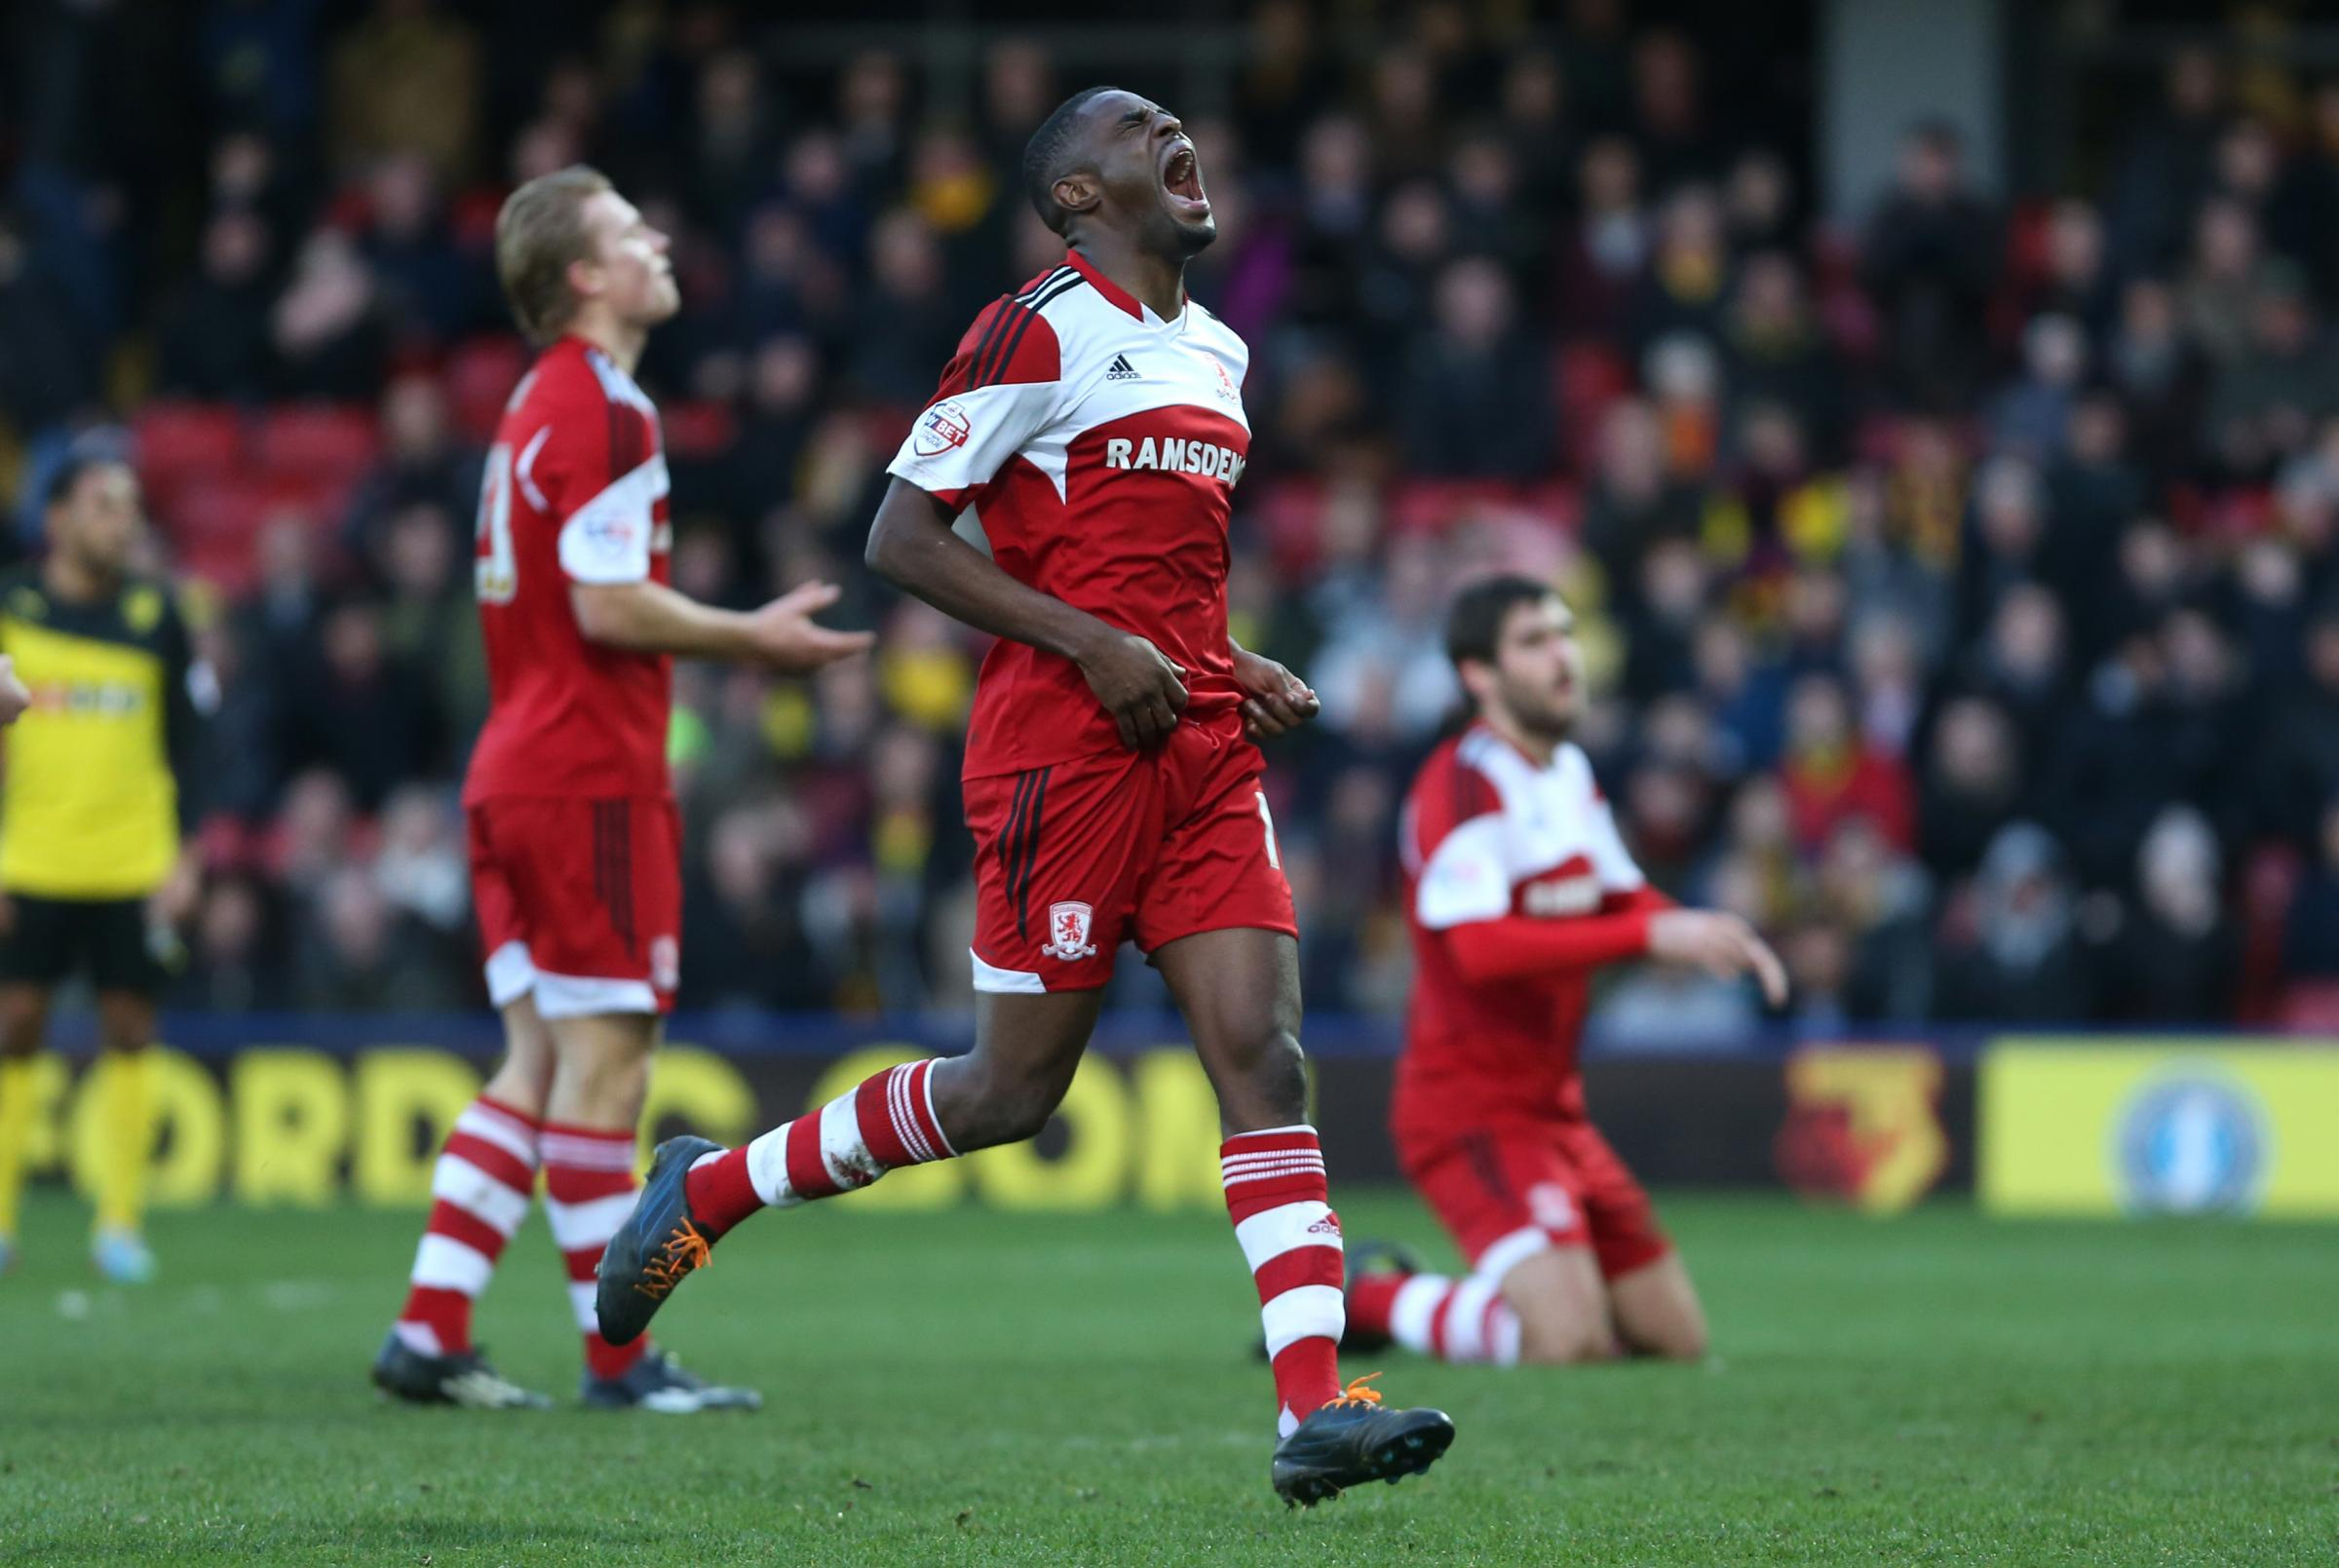 INJURY WOE: Boro attacker Mustapha Carayol is facing a lengthy spell on the sidelines